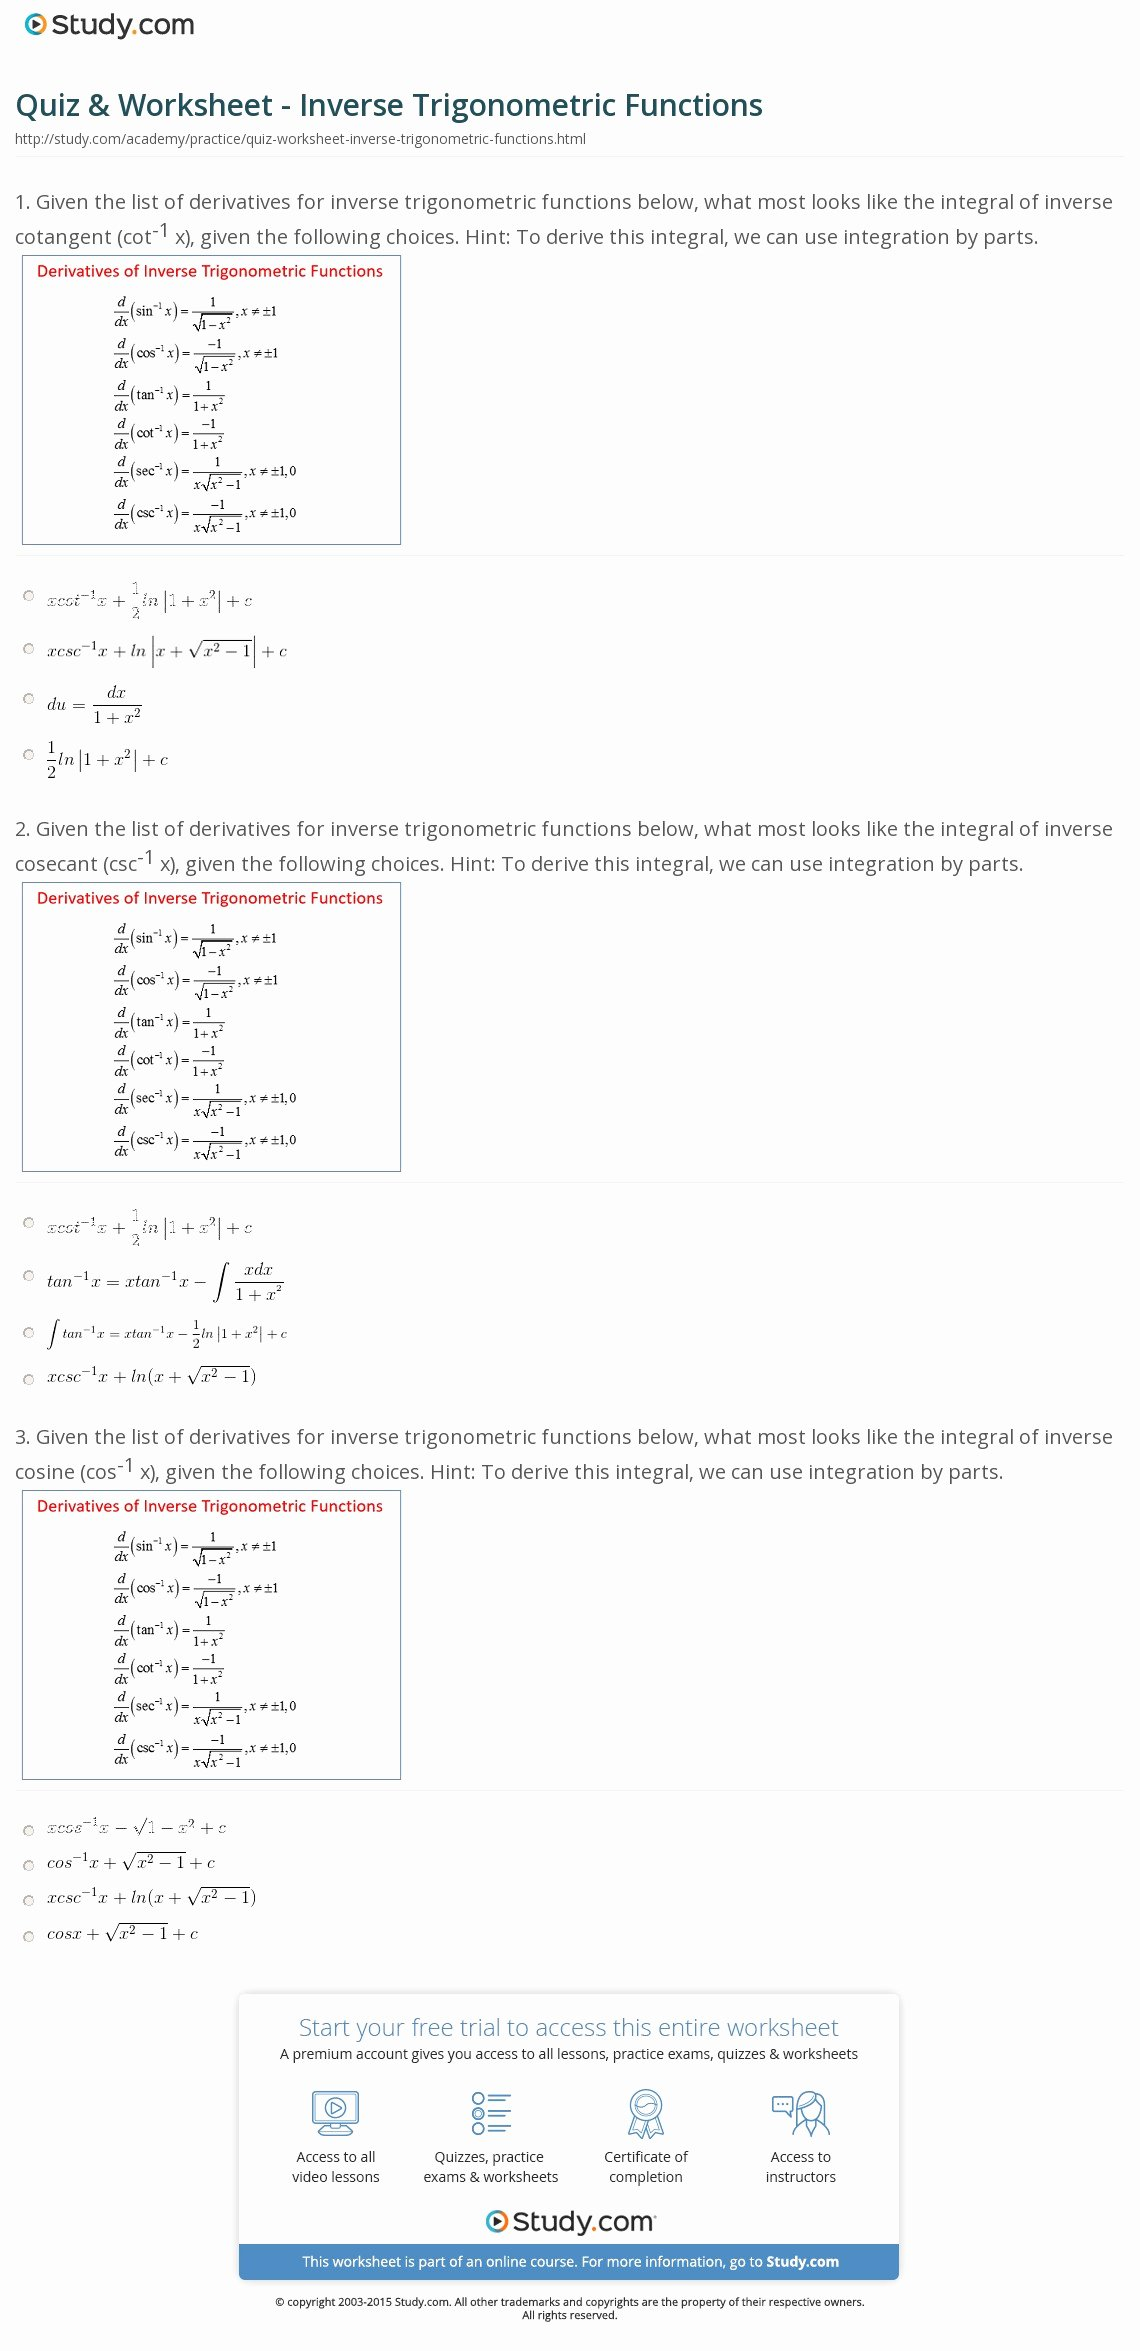 Inverse Trigonometric Functions Worksheet Unique Quiz & Worksheet Inverse Trigonometric Functions